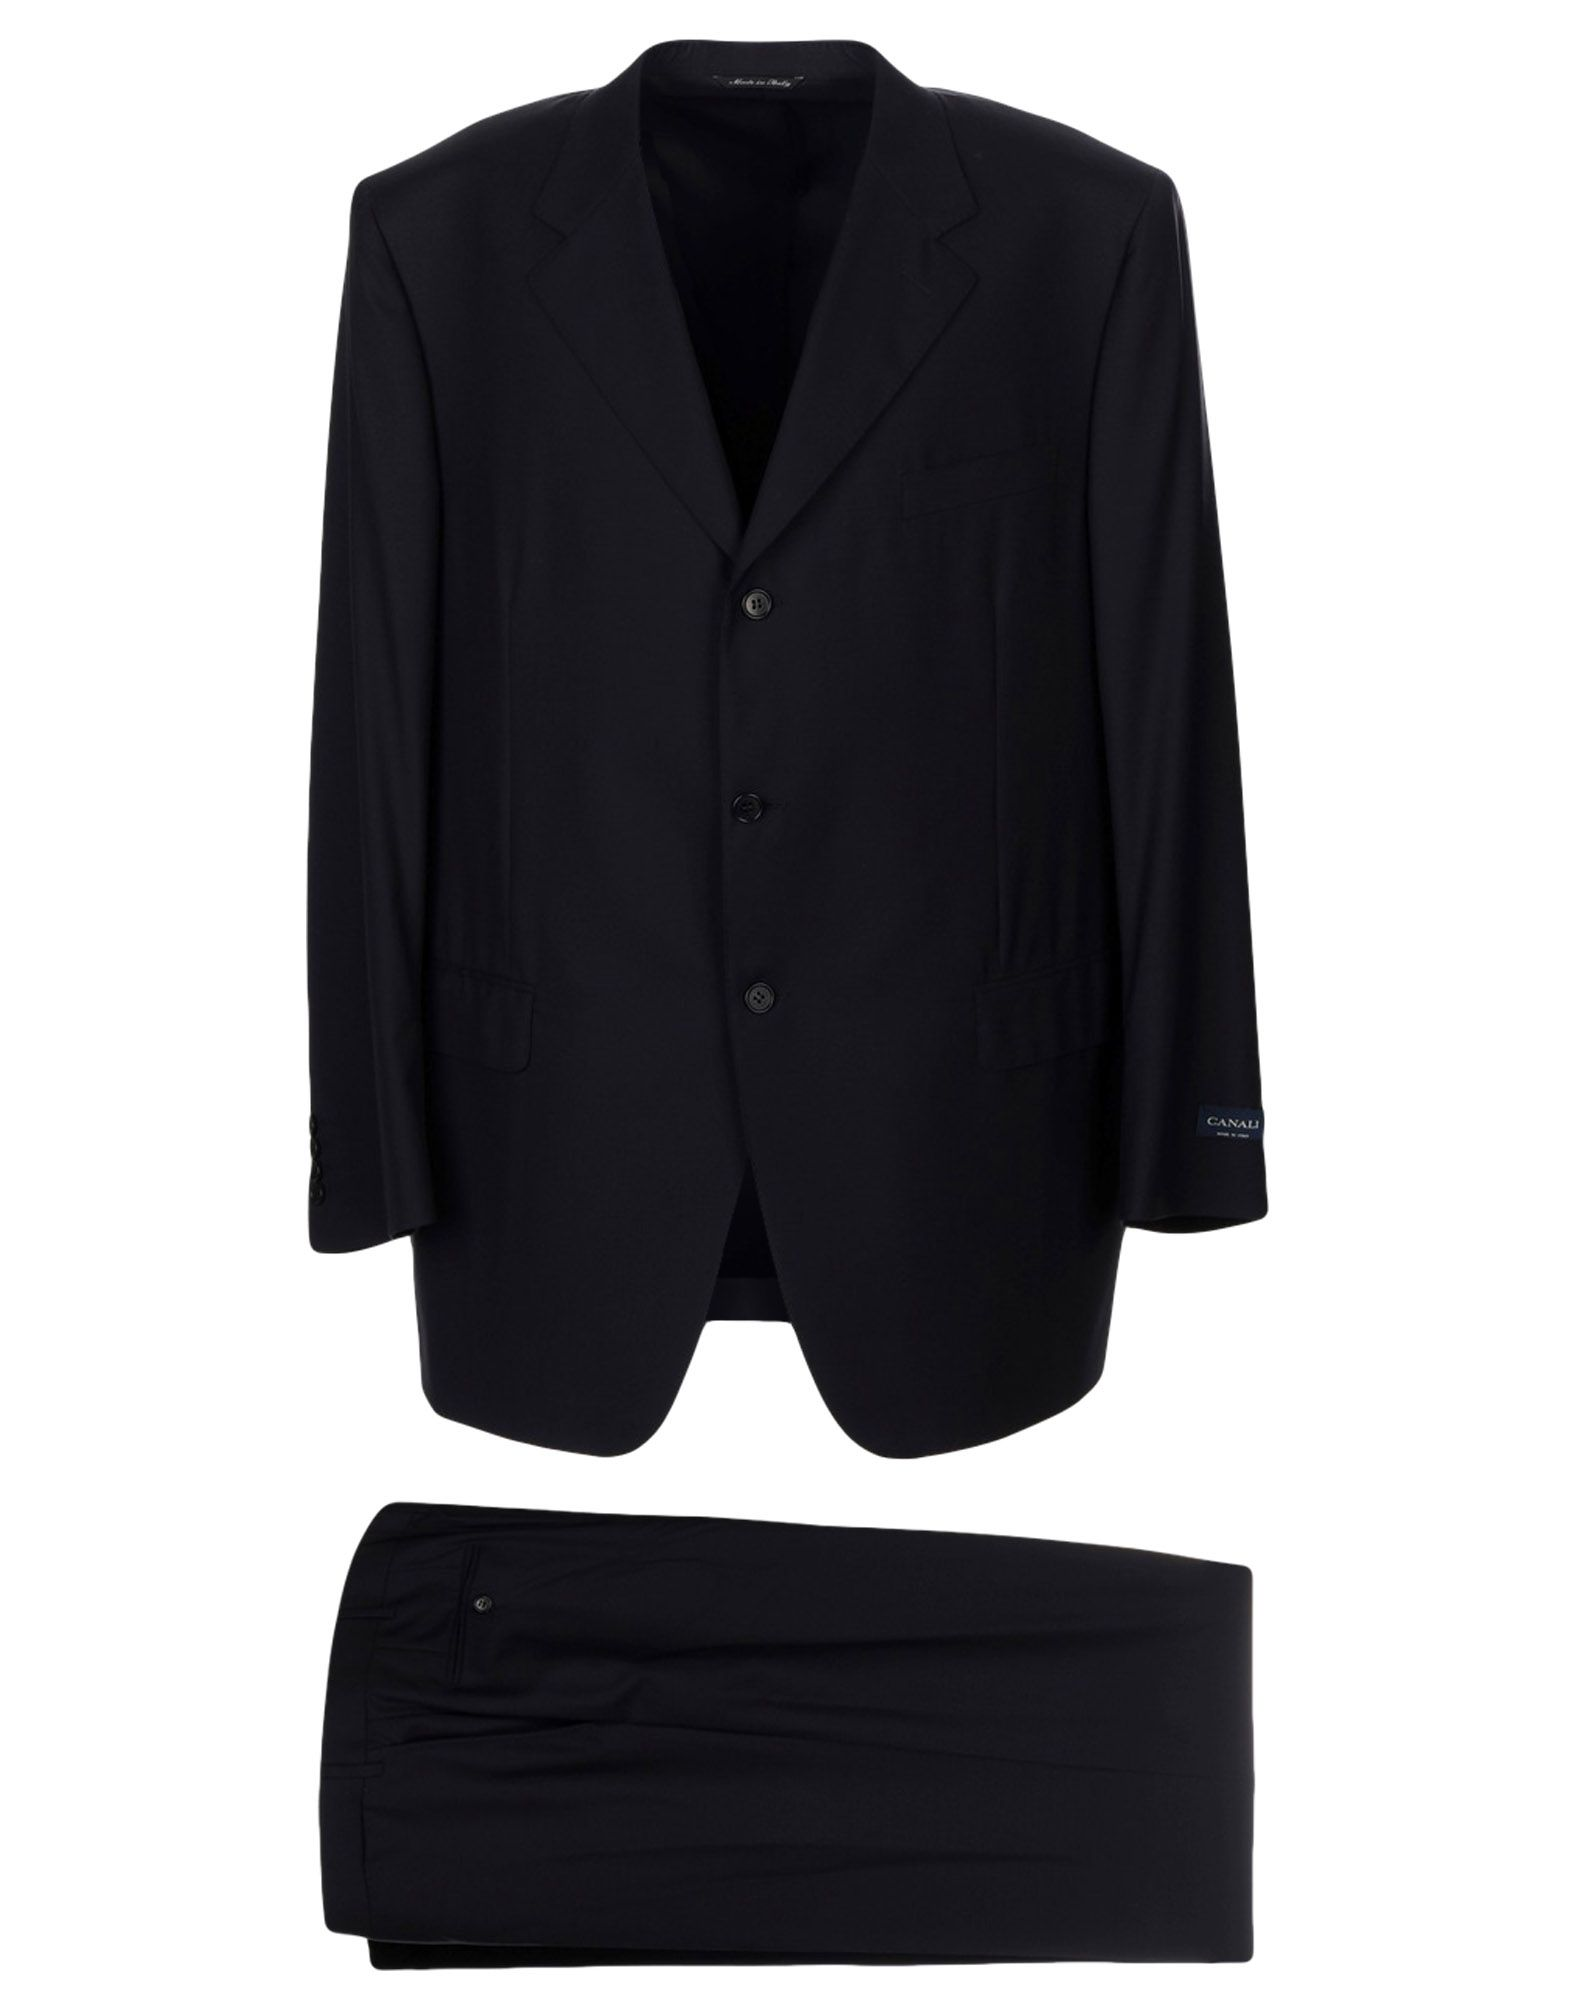 CANALI | CANALI Suits 49381035 | Goxip